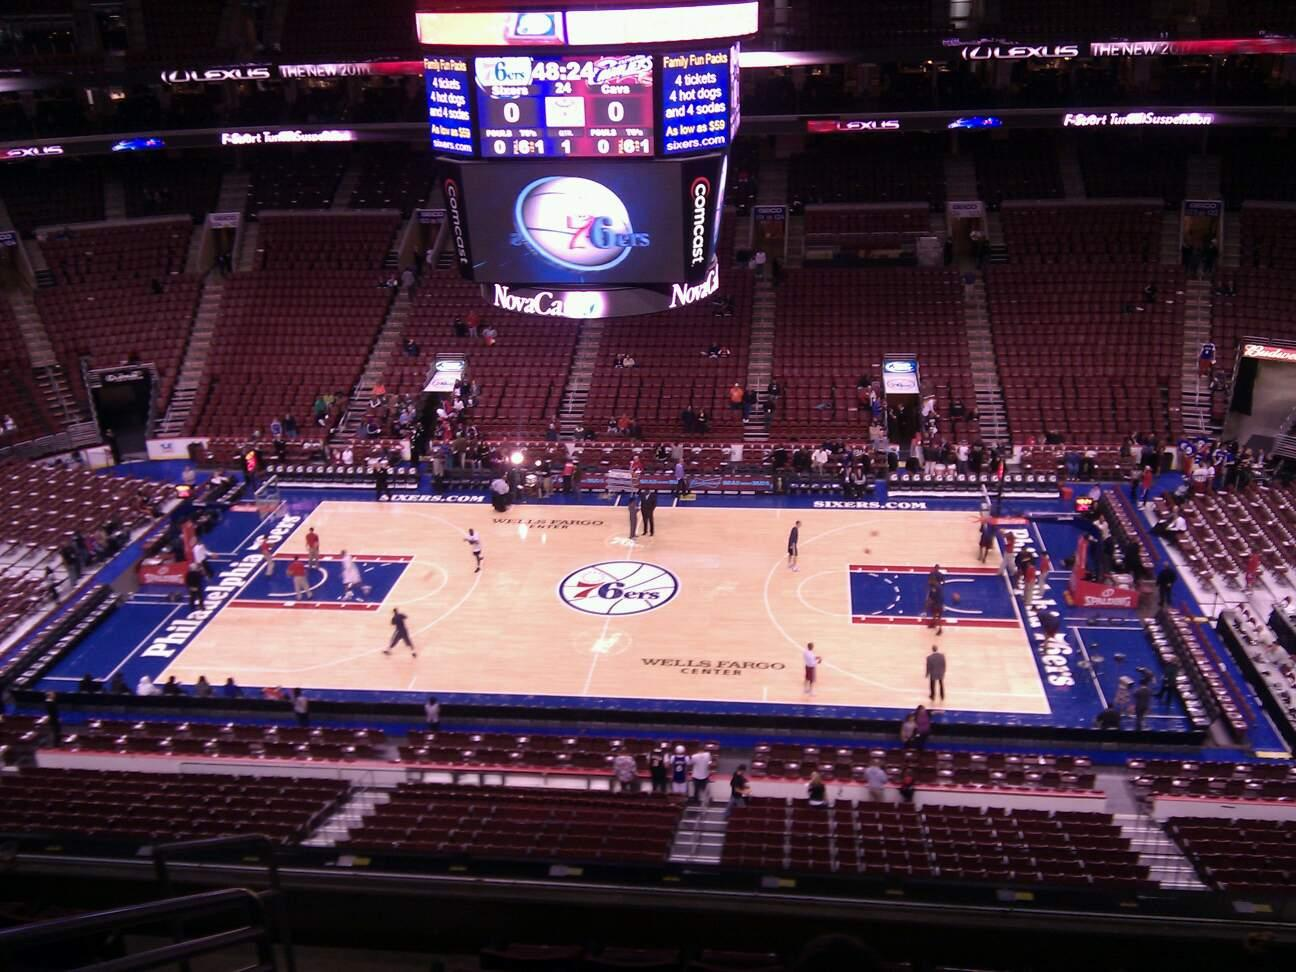 Wells Fargo Center Section 214 Row 7 Seat 1